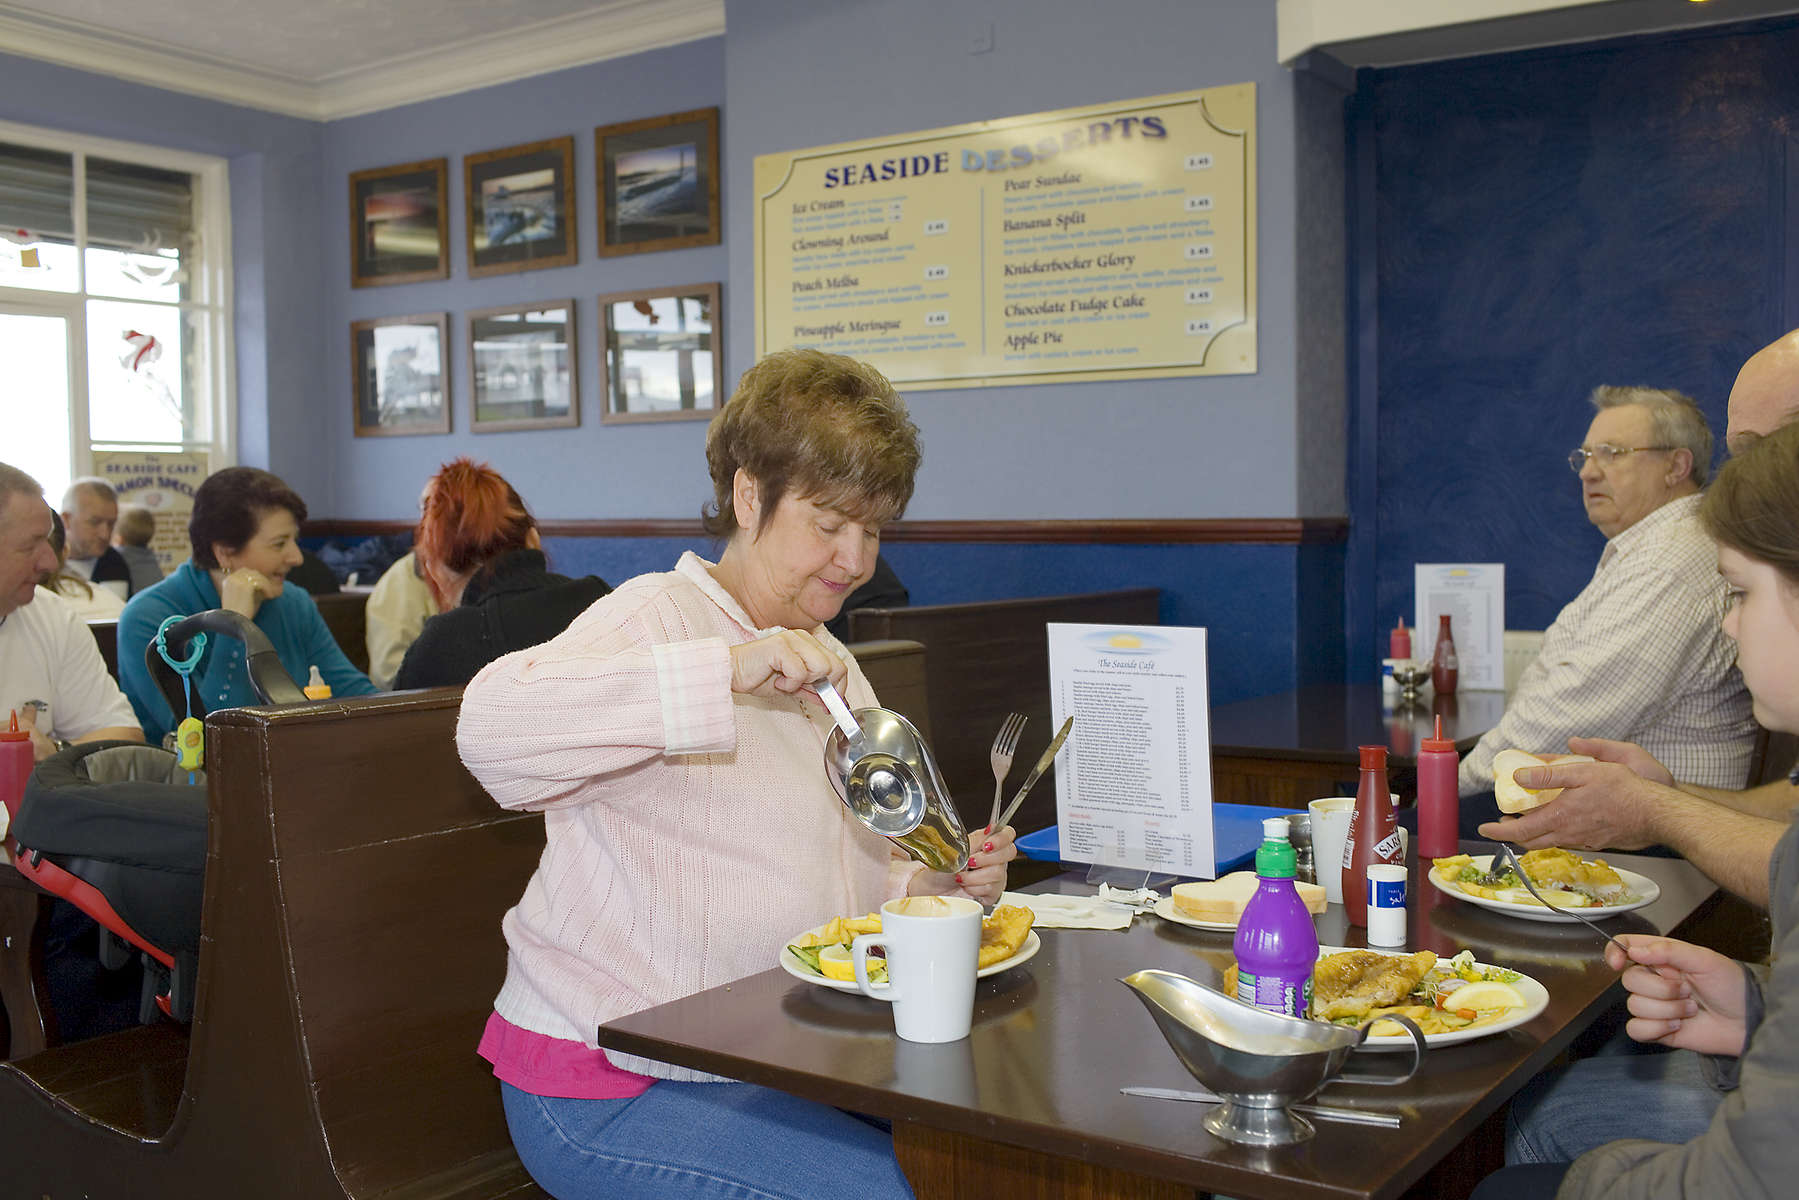 A woman pours gravy on her fis and chips served at the Seaside Cafe on Marine Promenade.In 1986 world famous photographer Martin Parr published his book 'The Last Resort,' a set of photographs taken over three seasons 1983-85 in the Liverpool suburb of New Brighton. 25 years later, pohtographer and Parr fan, Peter Dench, went on a pilgrimage to New Brigthon to walk in Parr's footsteps to document what has changed or remained the same in the seaside town.